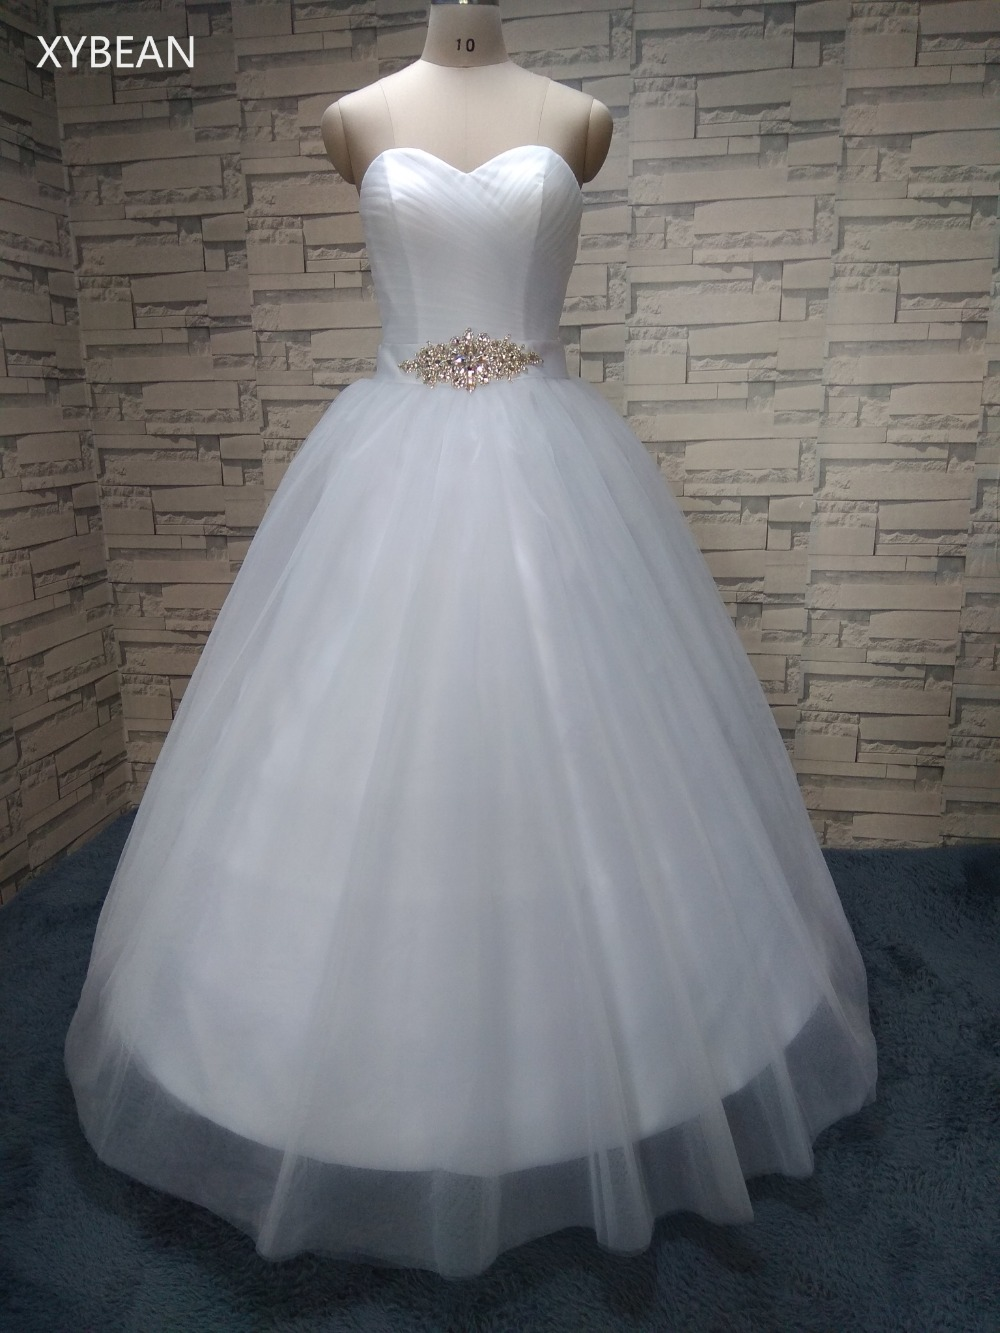 2018 New Arrival Bridal White Ivory Wedding Dress bridal Gown Custom Size 4 6 8 10